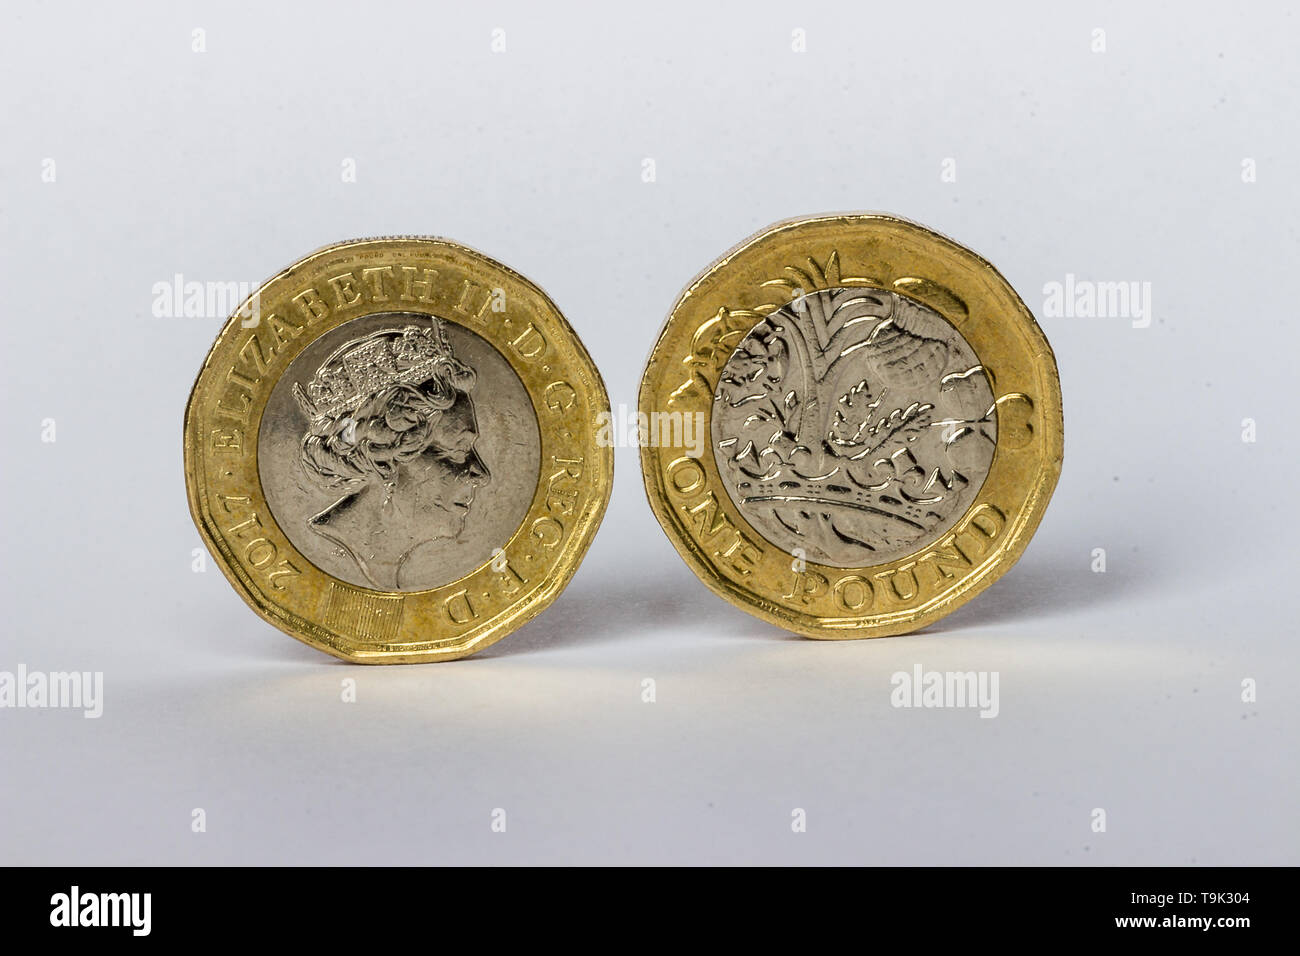 Pair of £1 coins standing on edge. - Stock Image